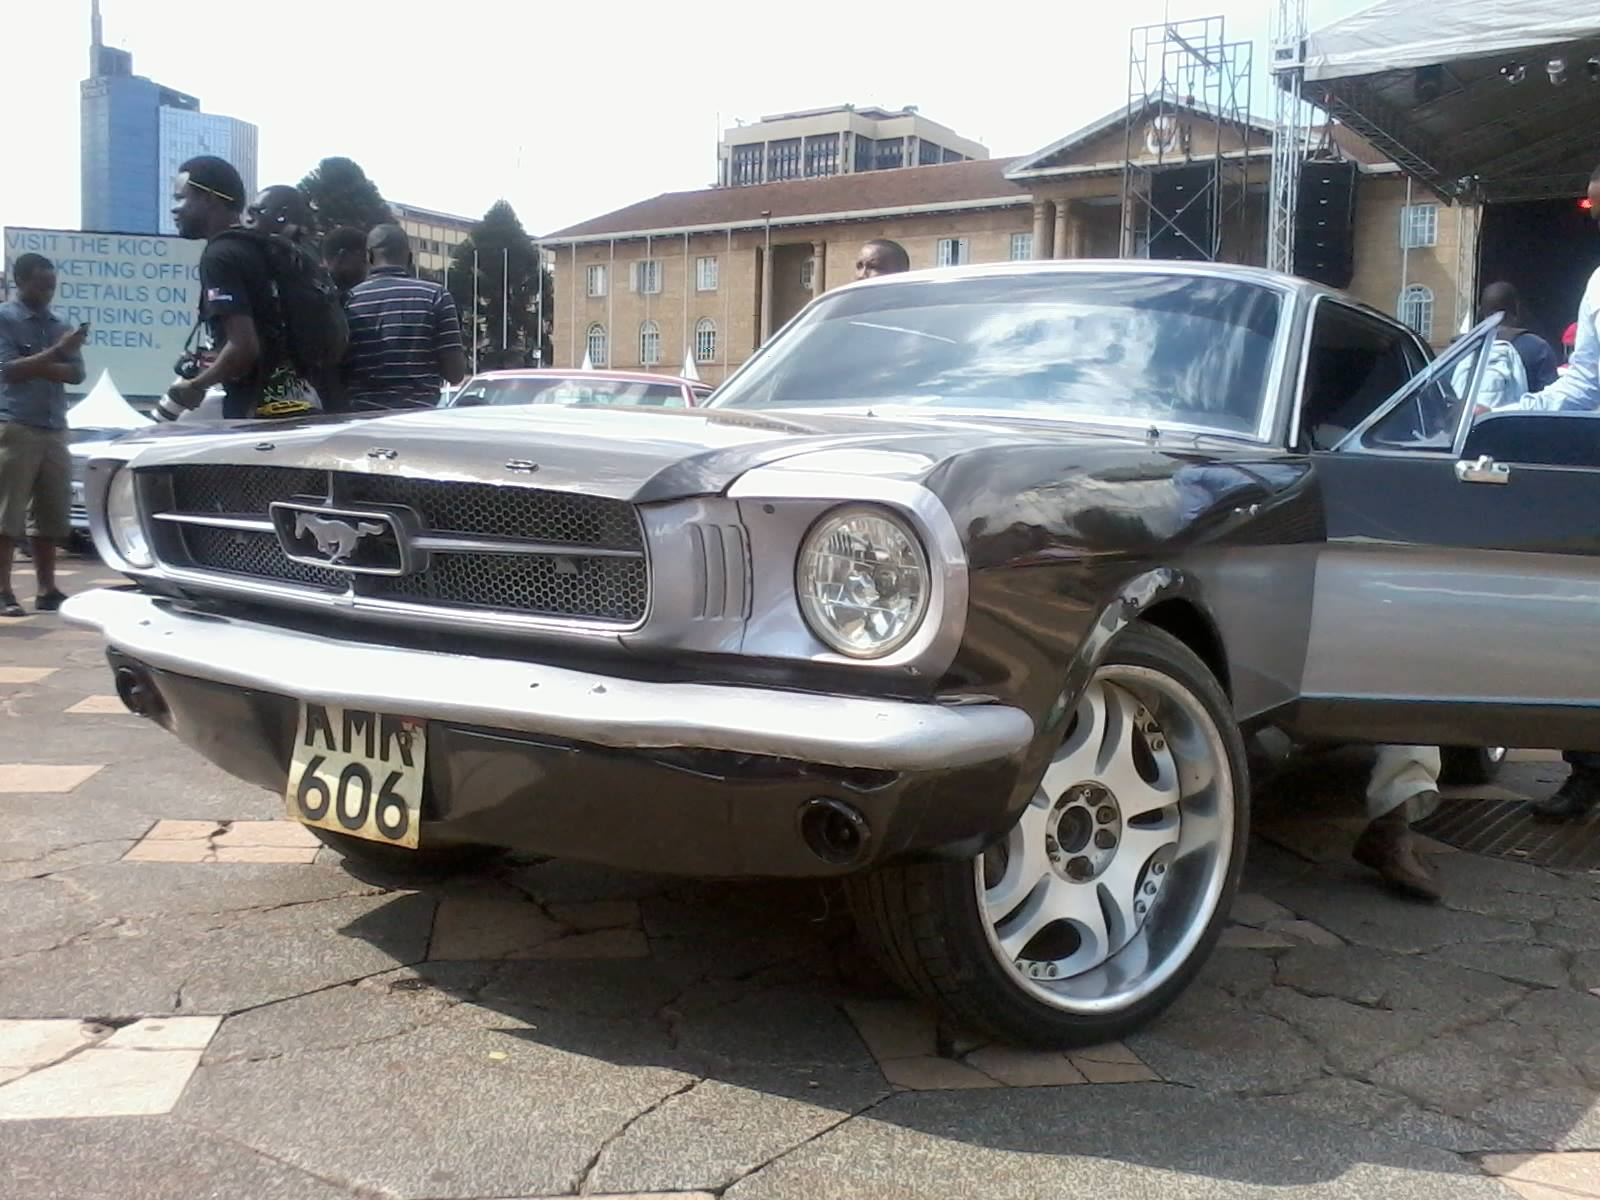 PHOTOS - Nairobi\'s Hottest Cars